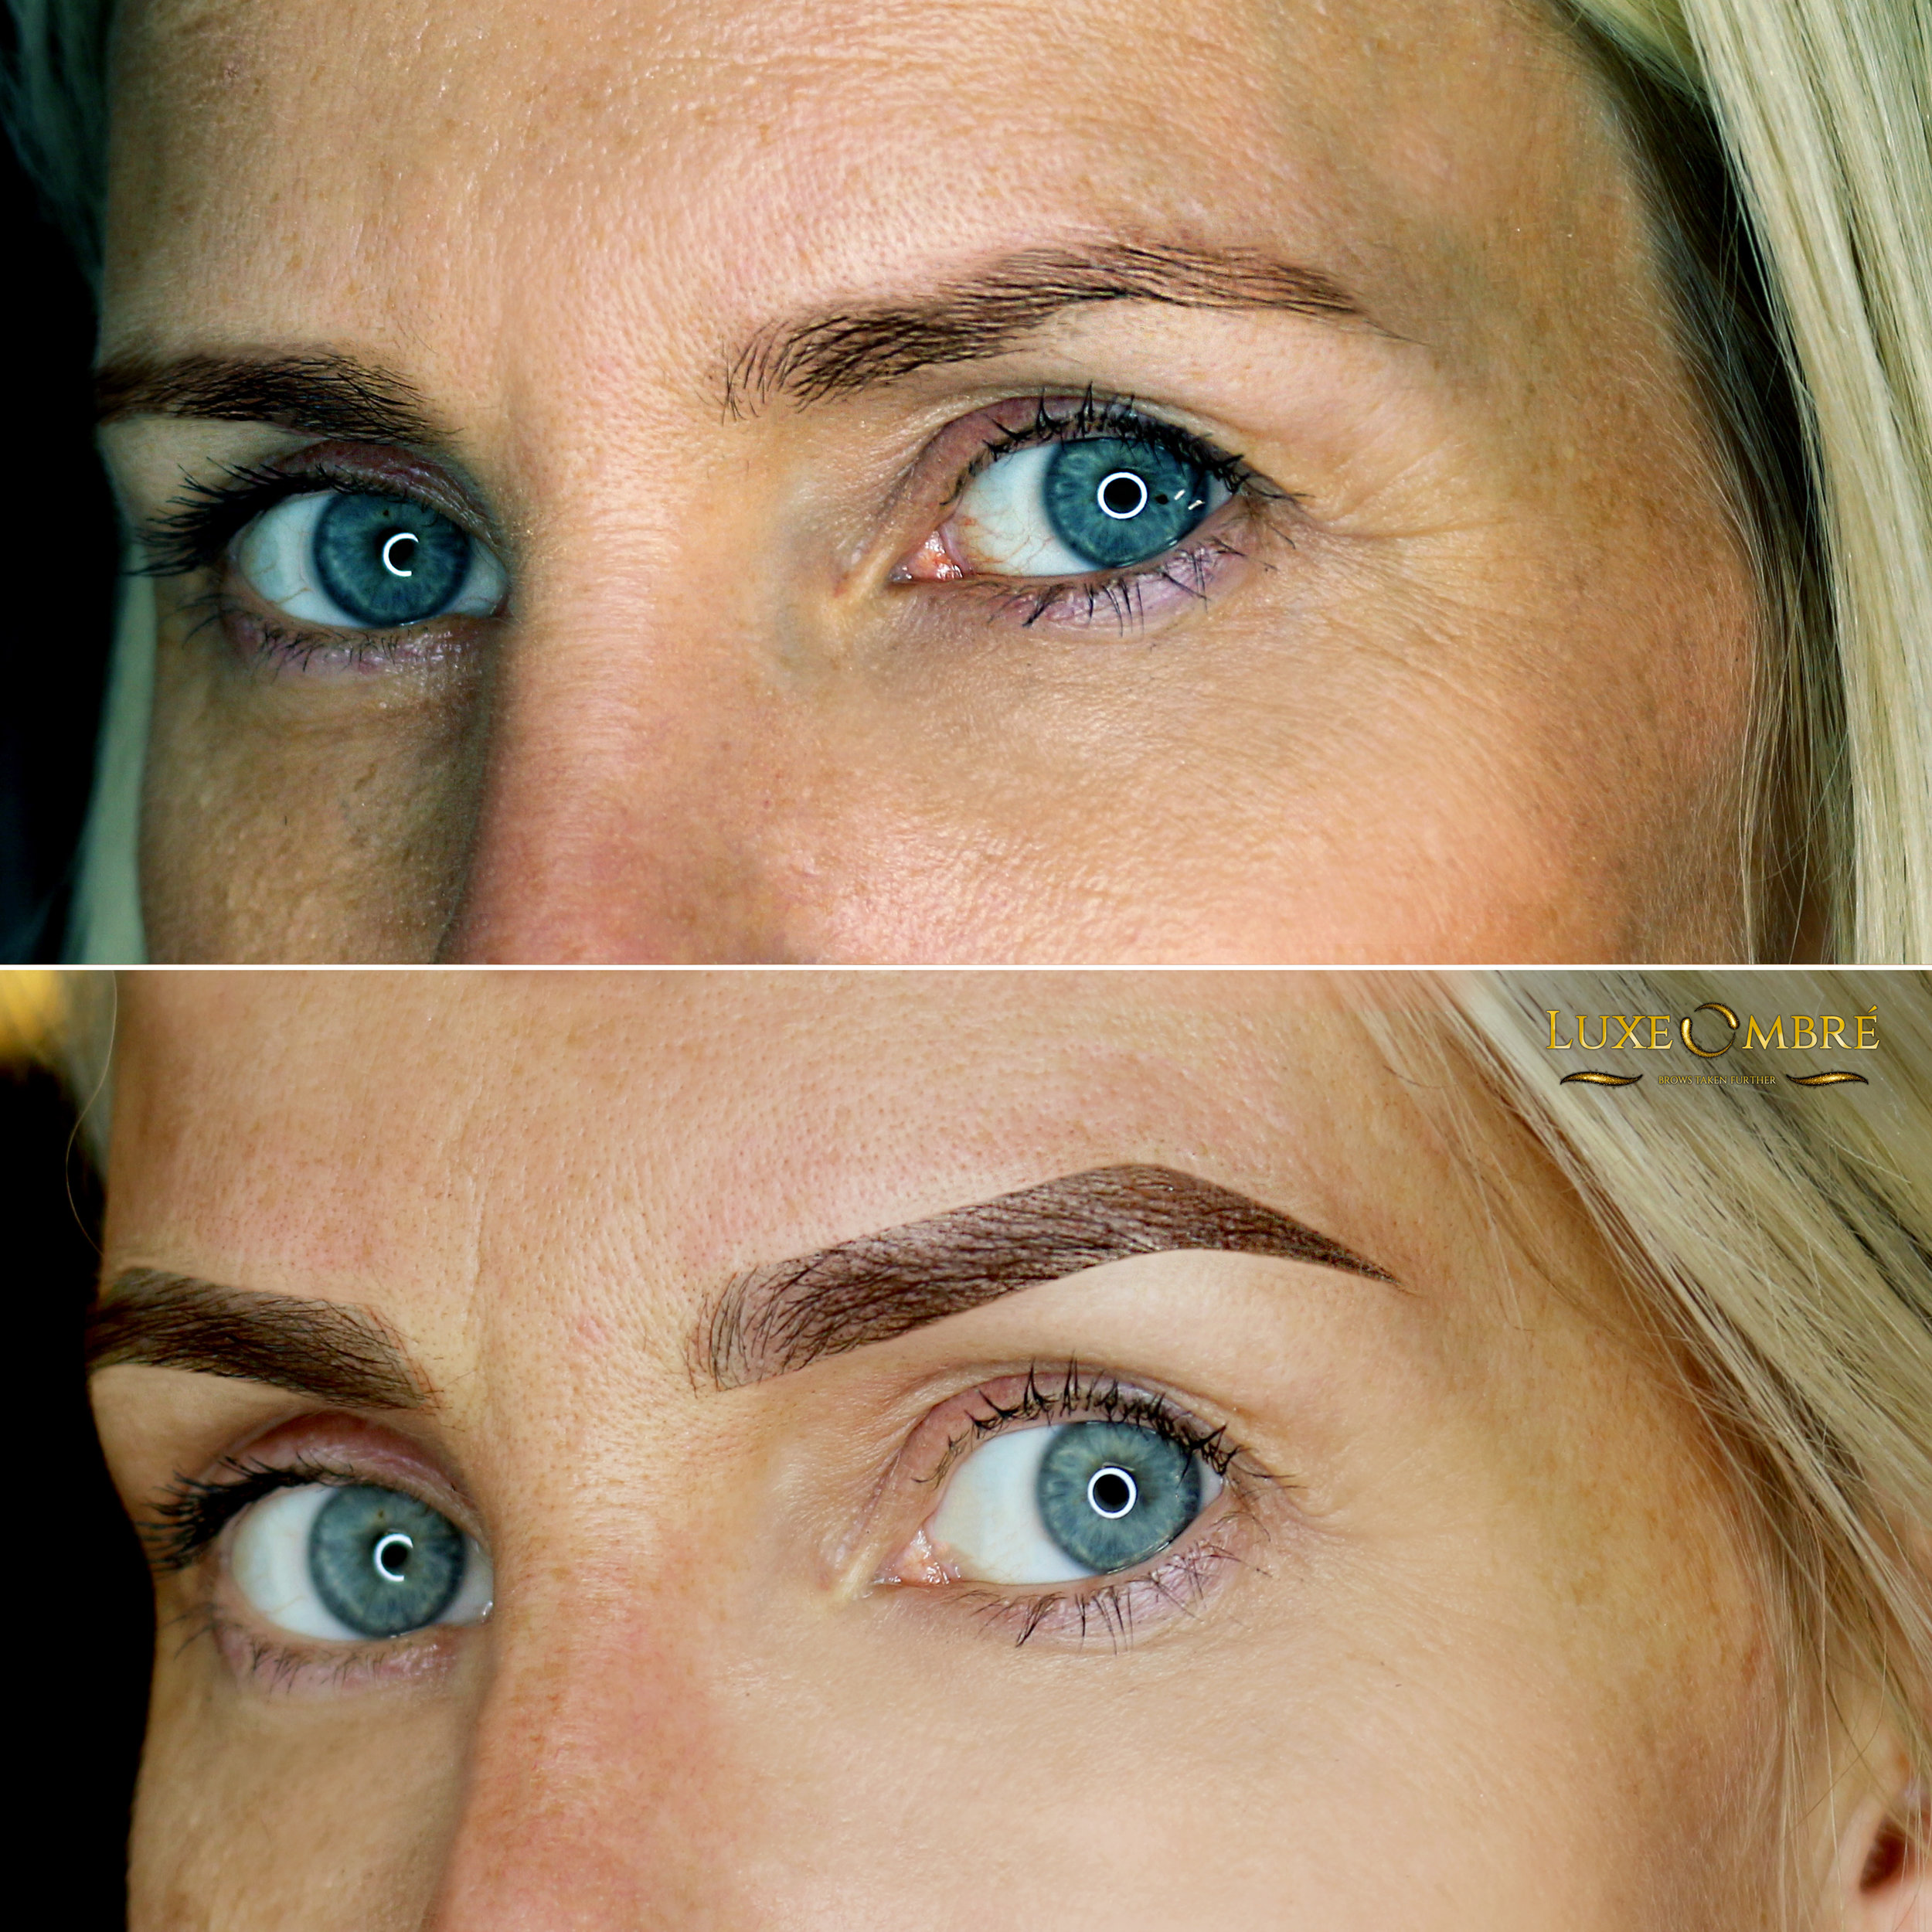 LuxeOmbre brows created on top of ordinary brows.